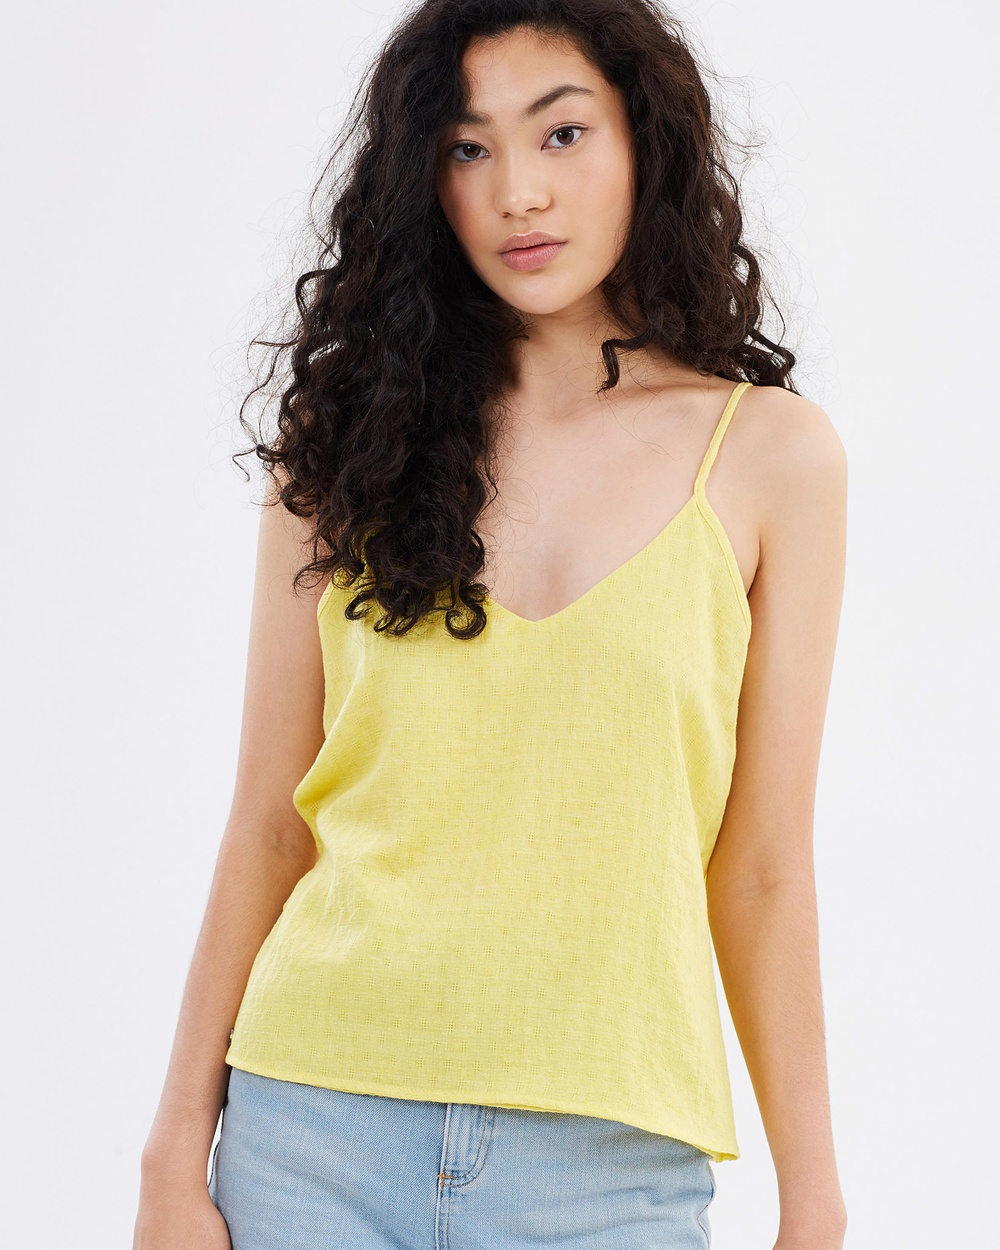 All About Eve New Romantic Cami Tops Yellow New Romantic Cami